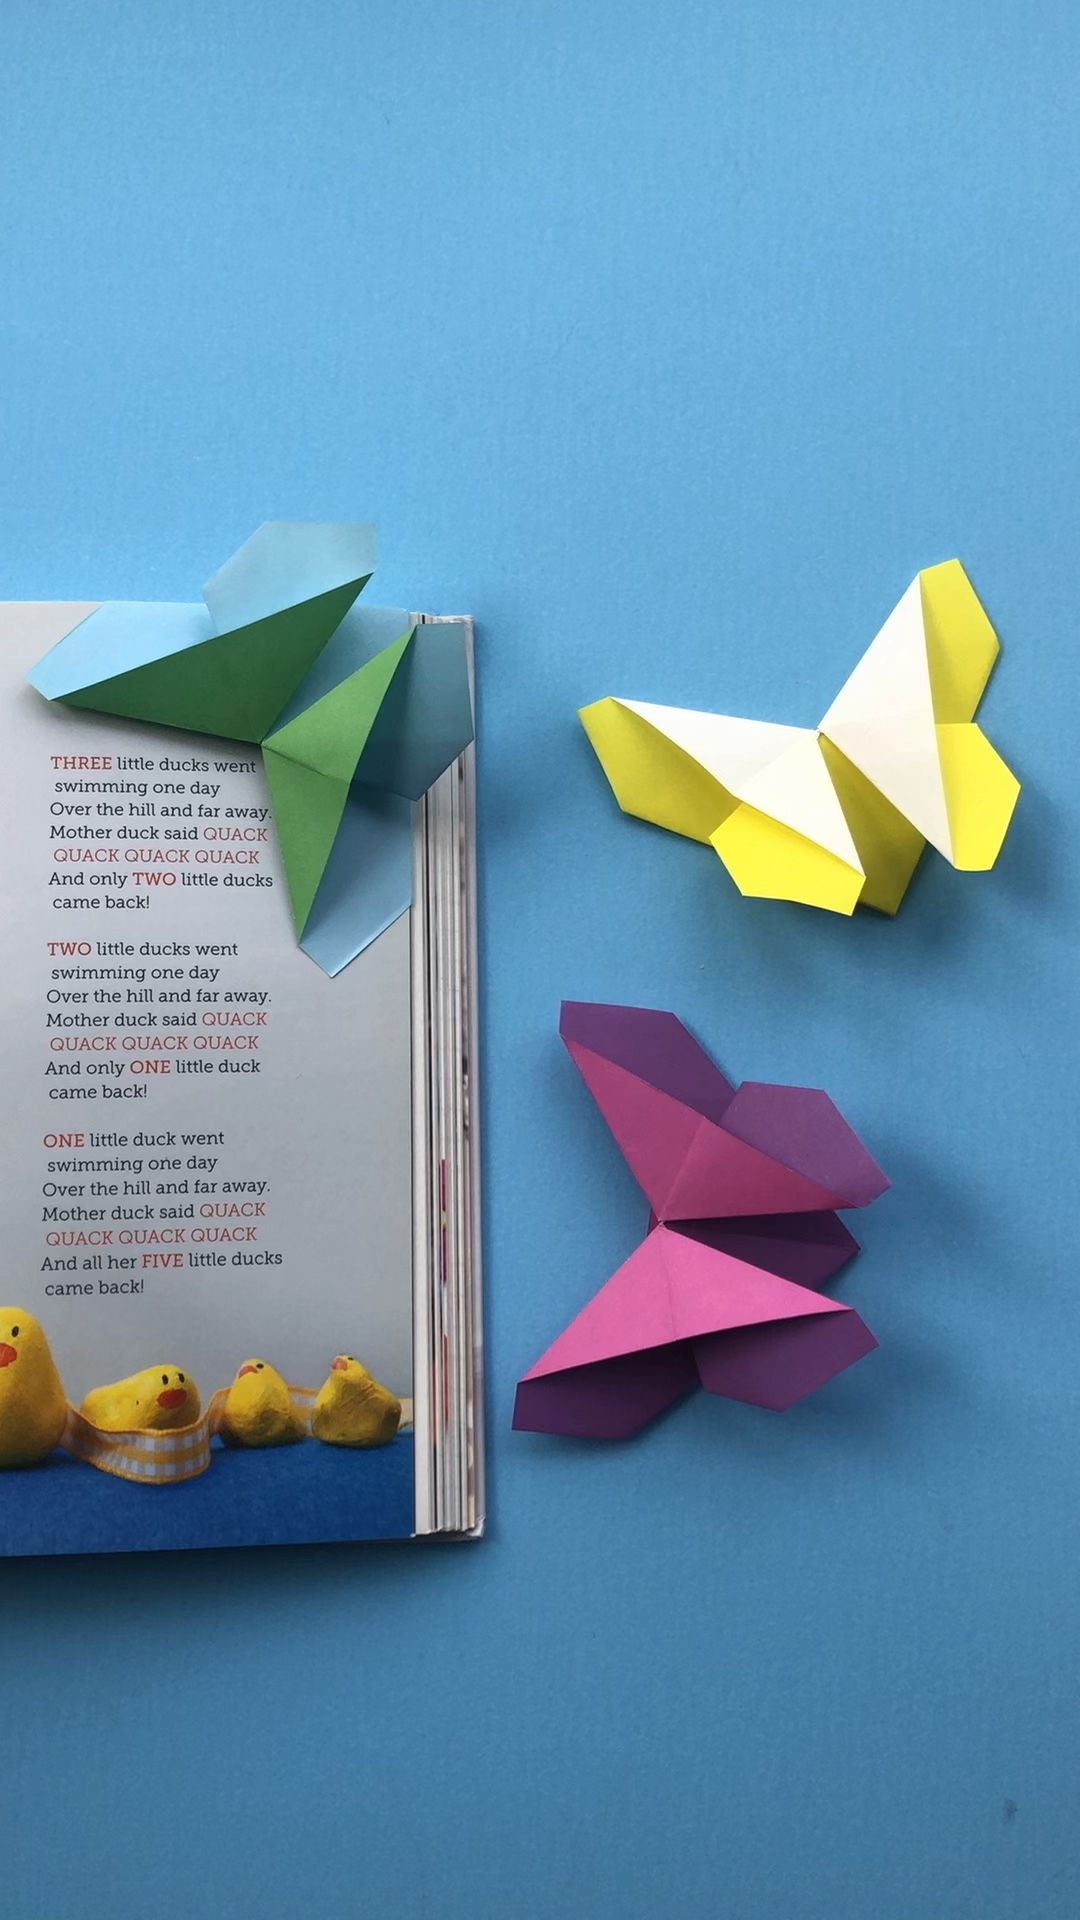 Oh my! What a cute Origami Butterfly for kids! Not only is it an easy paper butterfly pattern but it also doubles up as an origami butterfly bookmark corner! Cute! Lovely little paper gift for kids to make on Mother's Day or for a teacher!